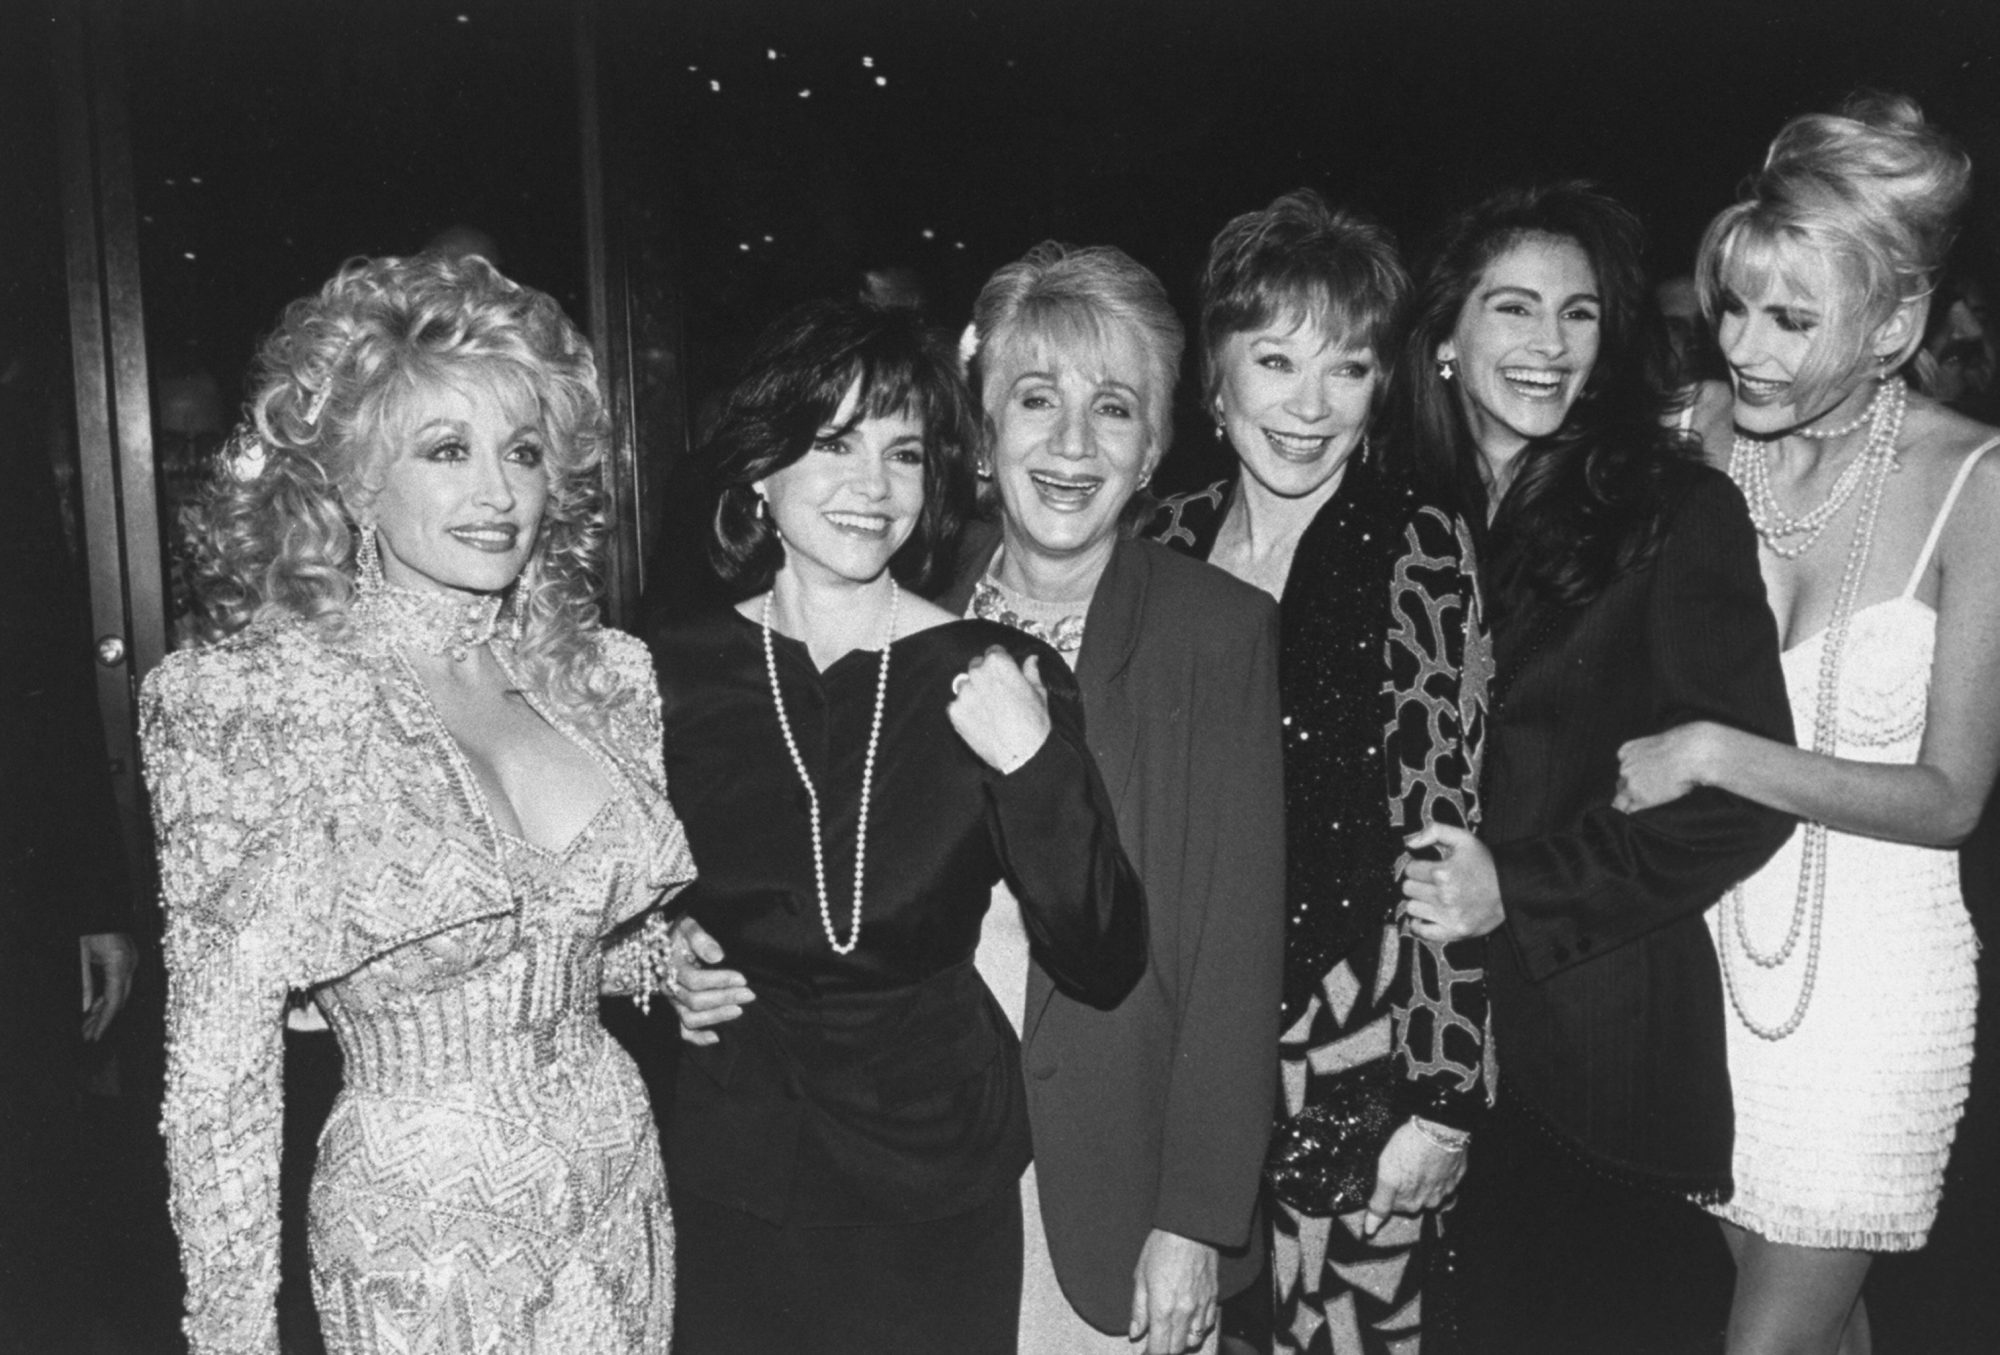 Things Even Die-Hard Steel Magnolias Fans Probably Don't Know About the Classic